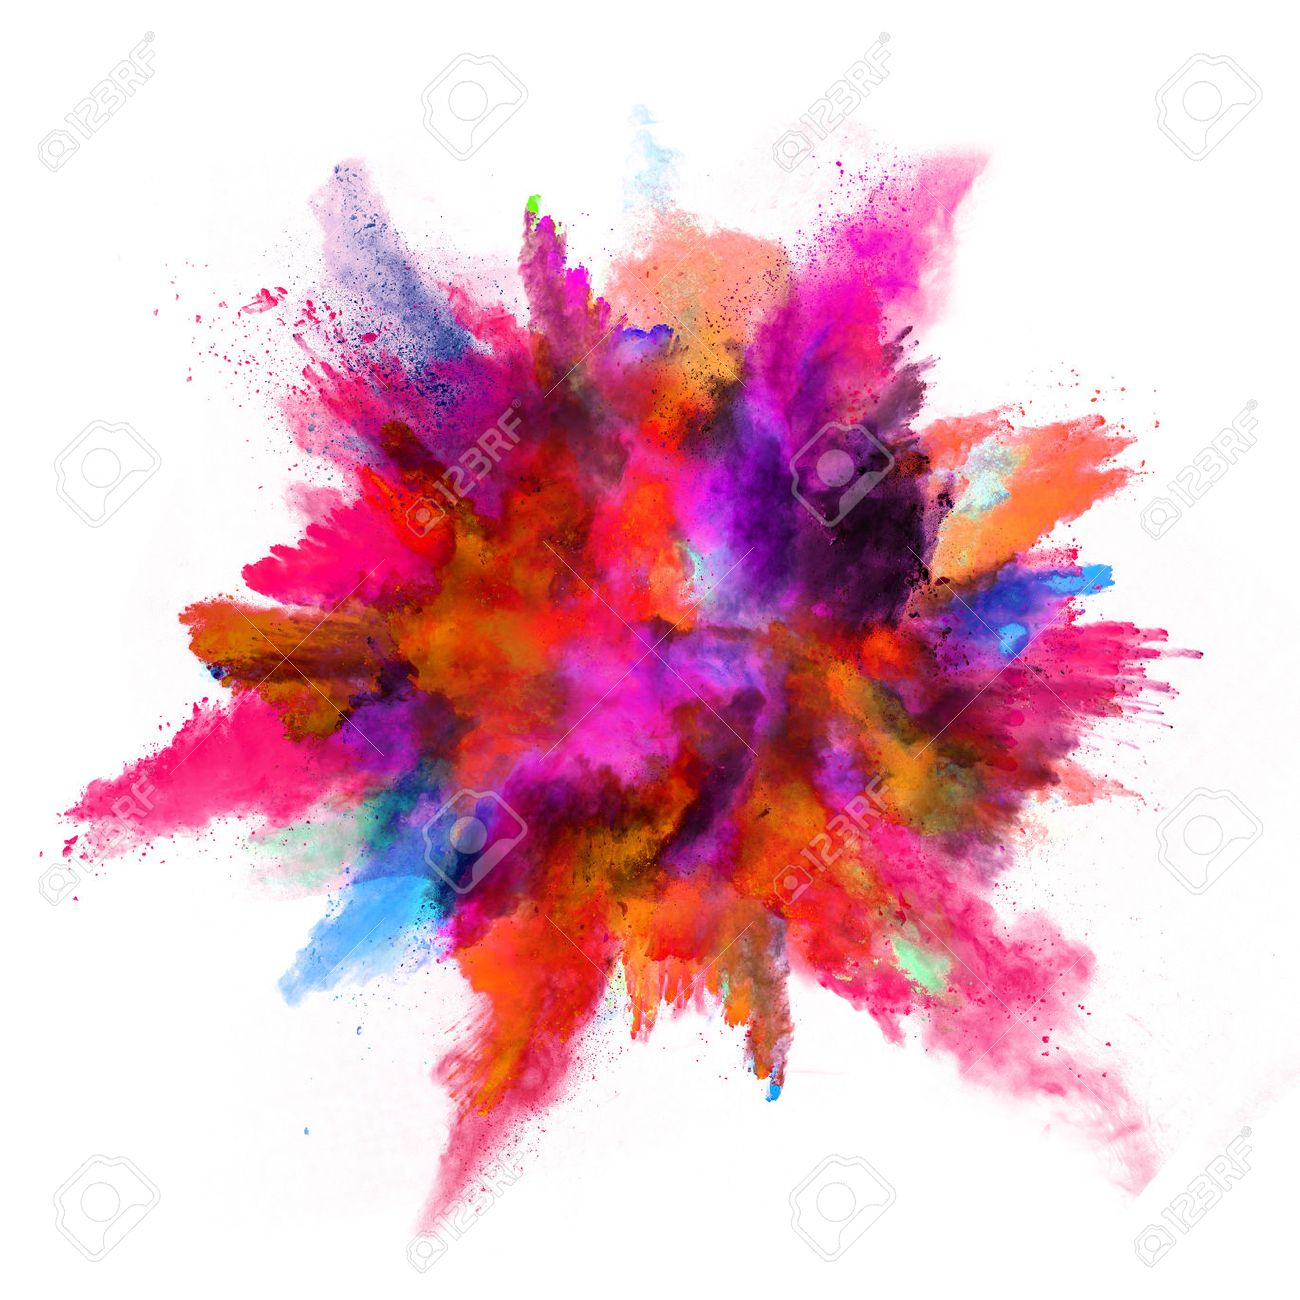 Explosion of colored powder, isolated on white background - 53031743